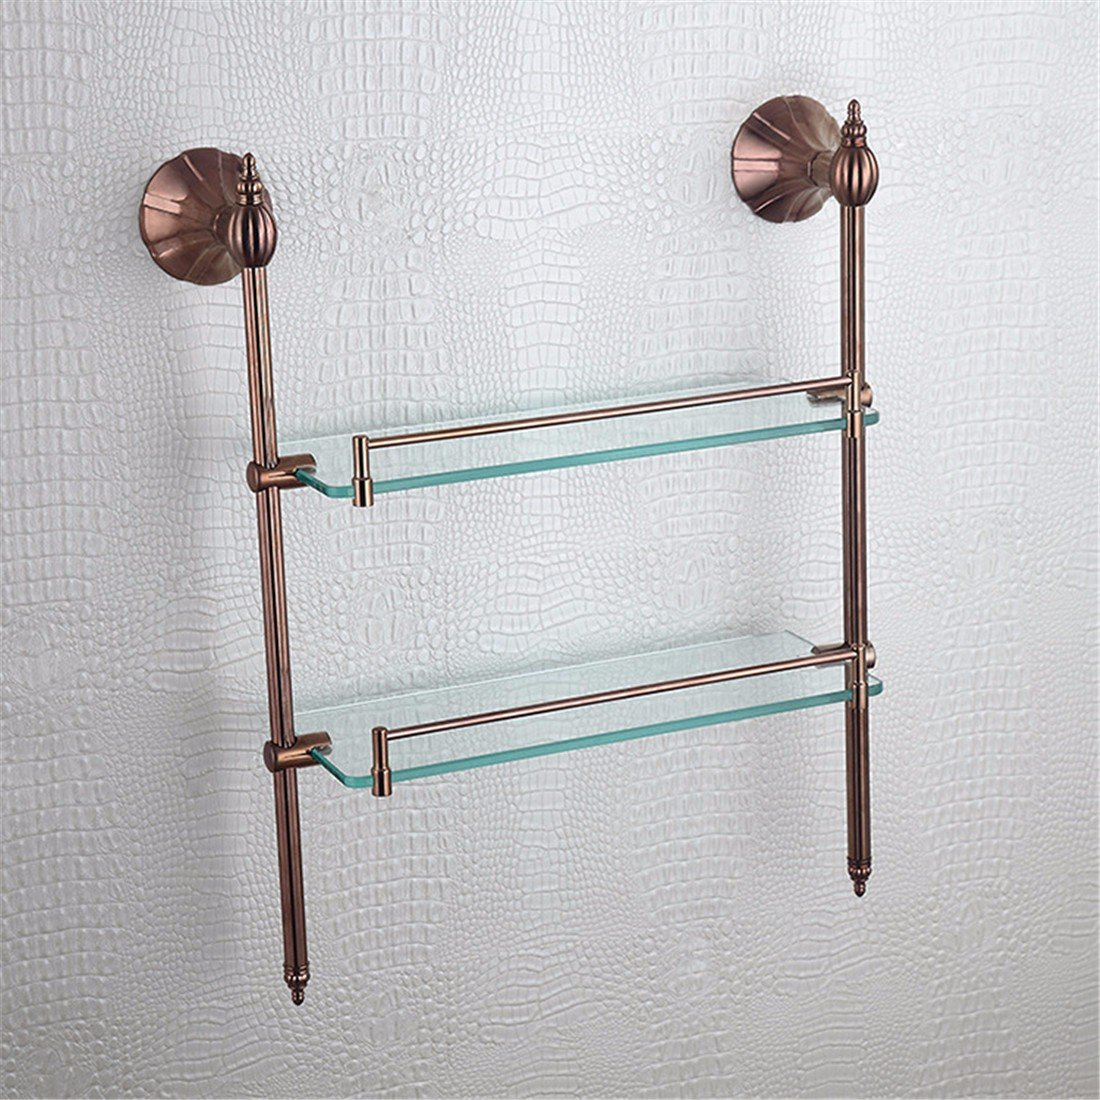 LAONA European style full copper rose gold petal base, bathroom accessories, towel rack, single and double pole, single and double toothbrush holder,Rack 2